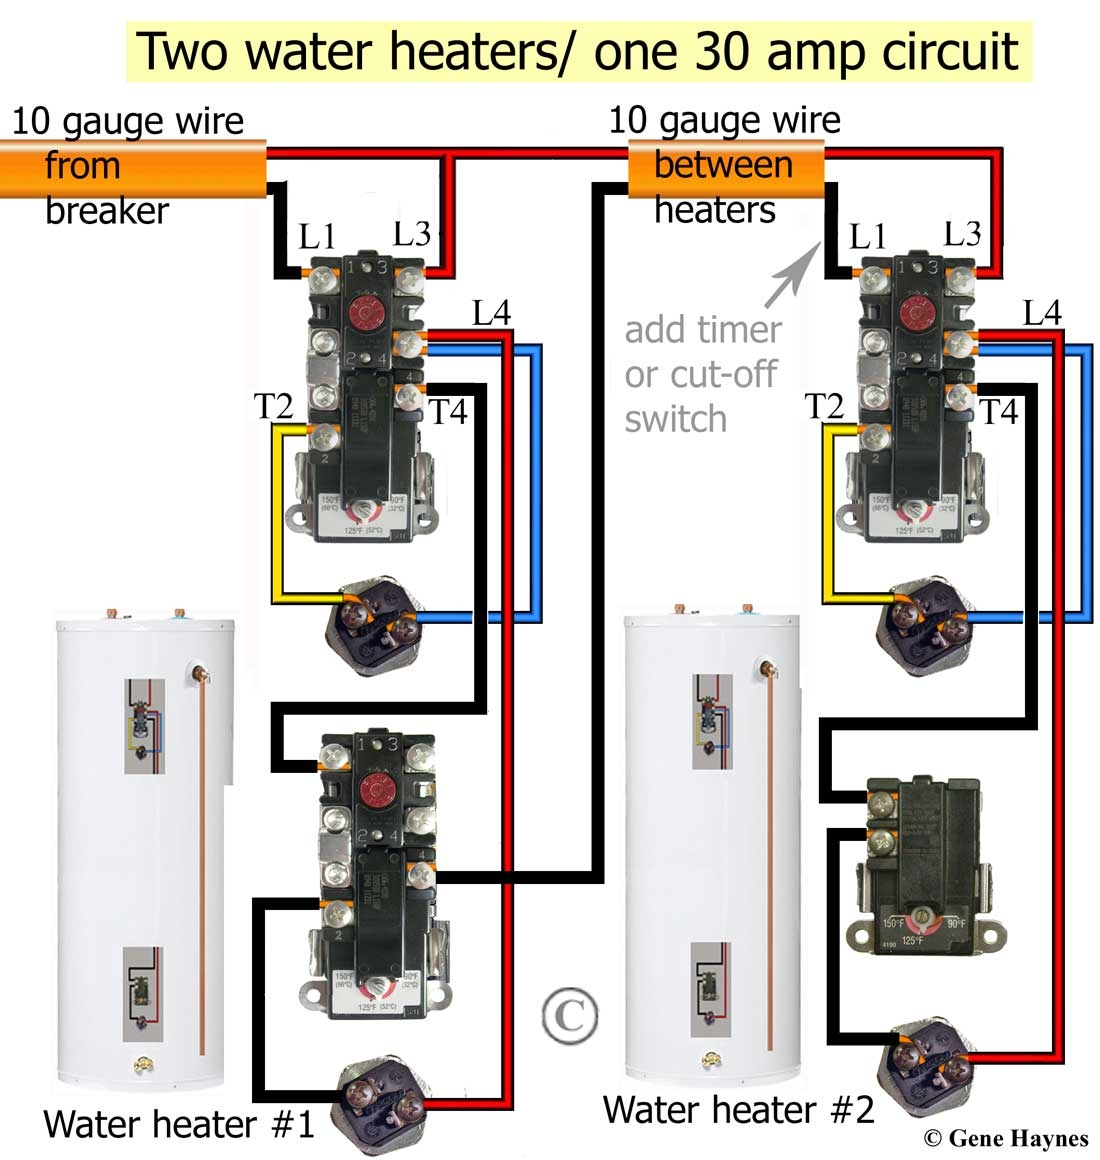 rheem electric water heater wiring diagram Download-Rheem Electric Water Heater Wiring Diagram Fresh 8 Rheem Electric 3-b